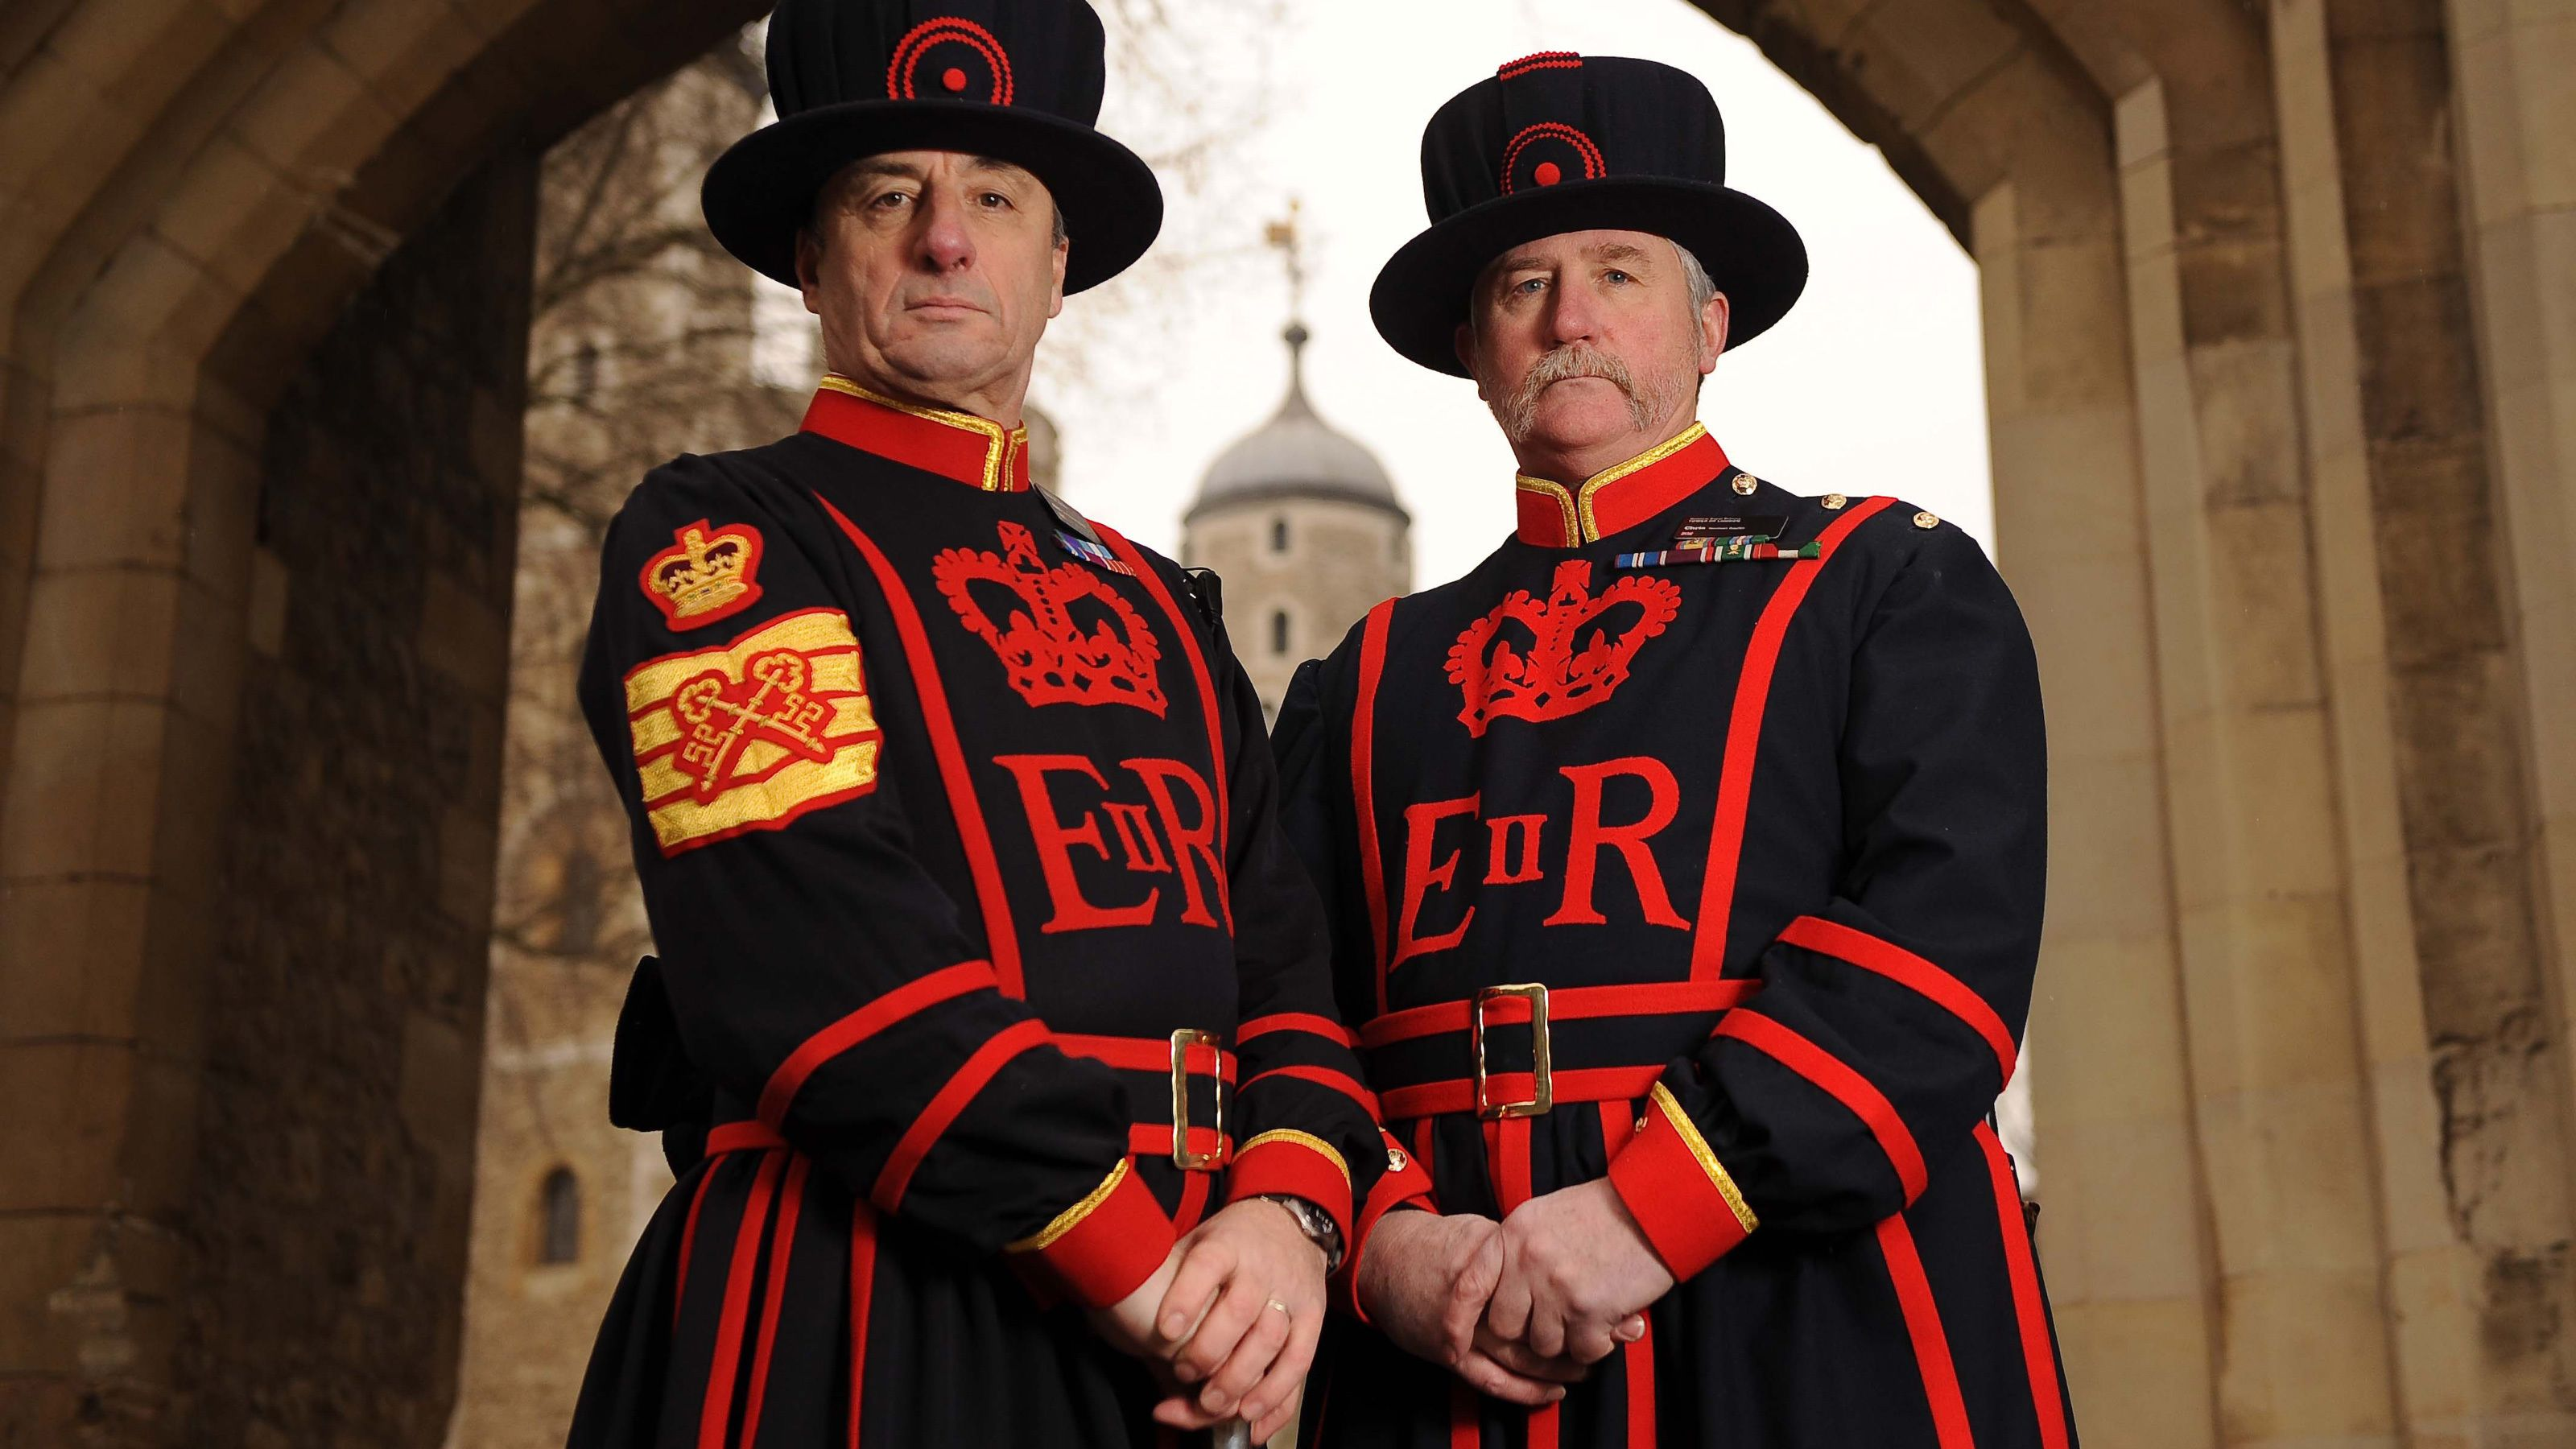 two men in authentic Beefeater apparel at Tower of London